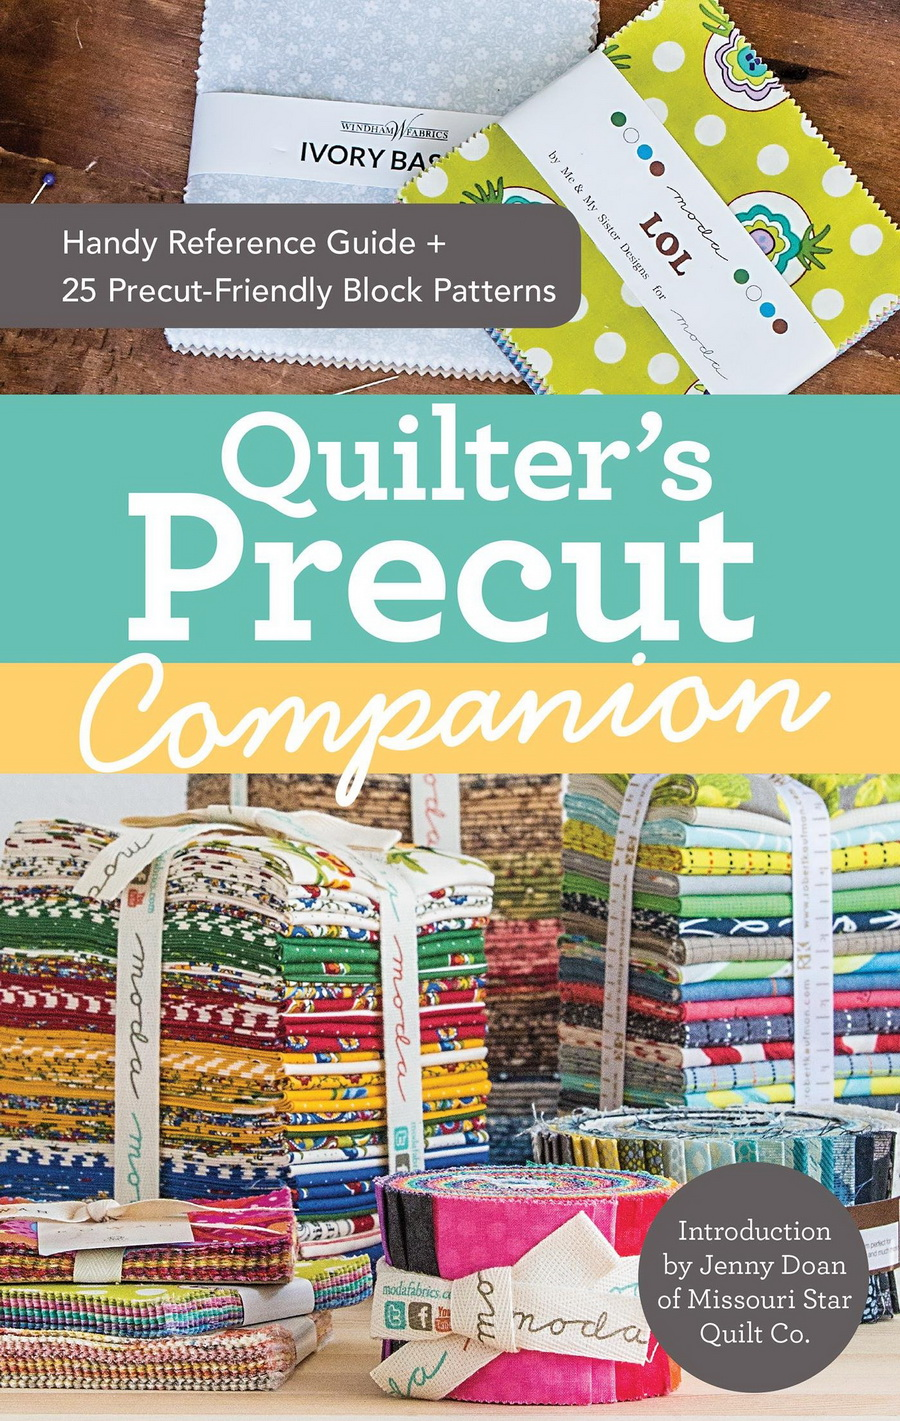 Quilters Precut Companion: Handy Reference Guide + 25 Precut-Friendly Block Patterns